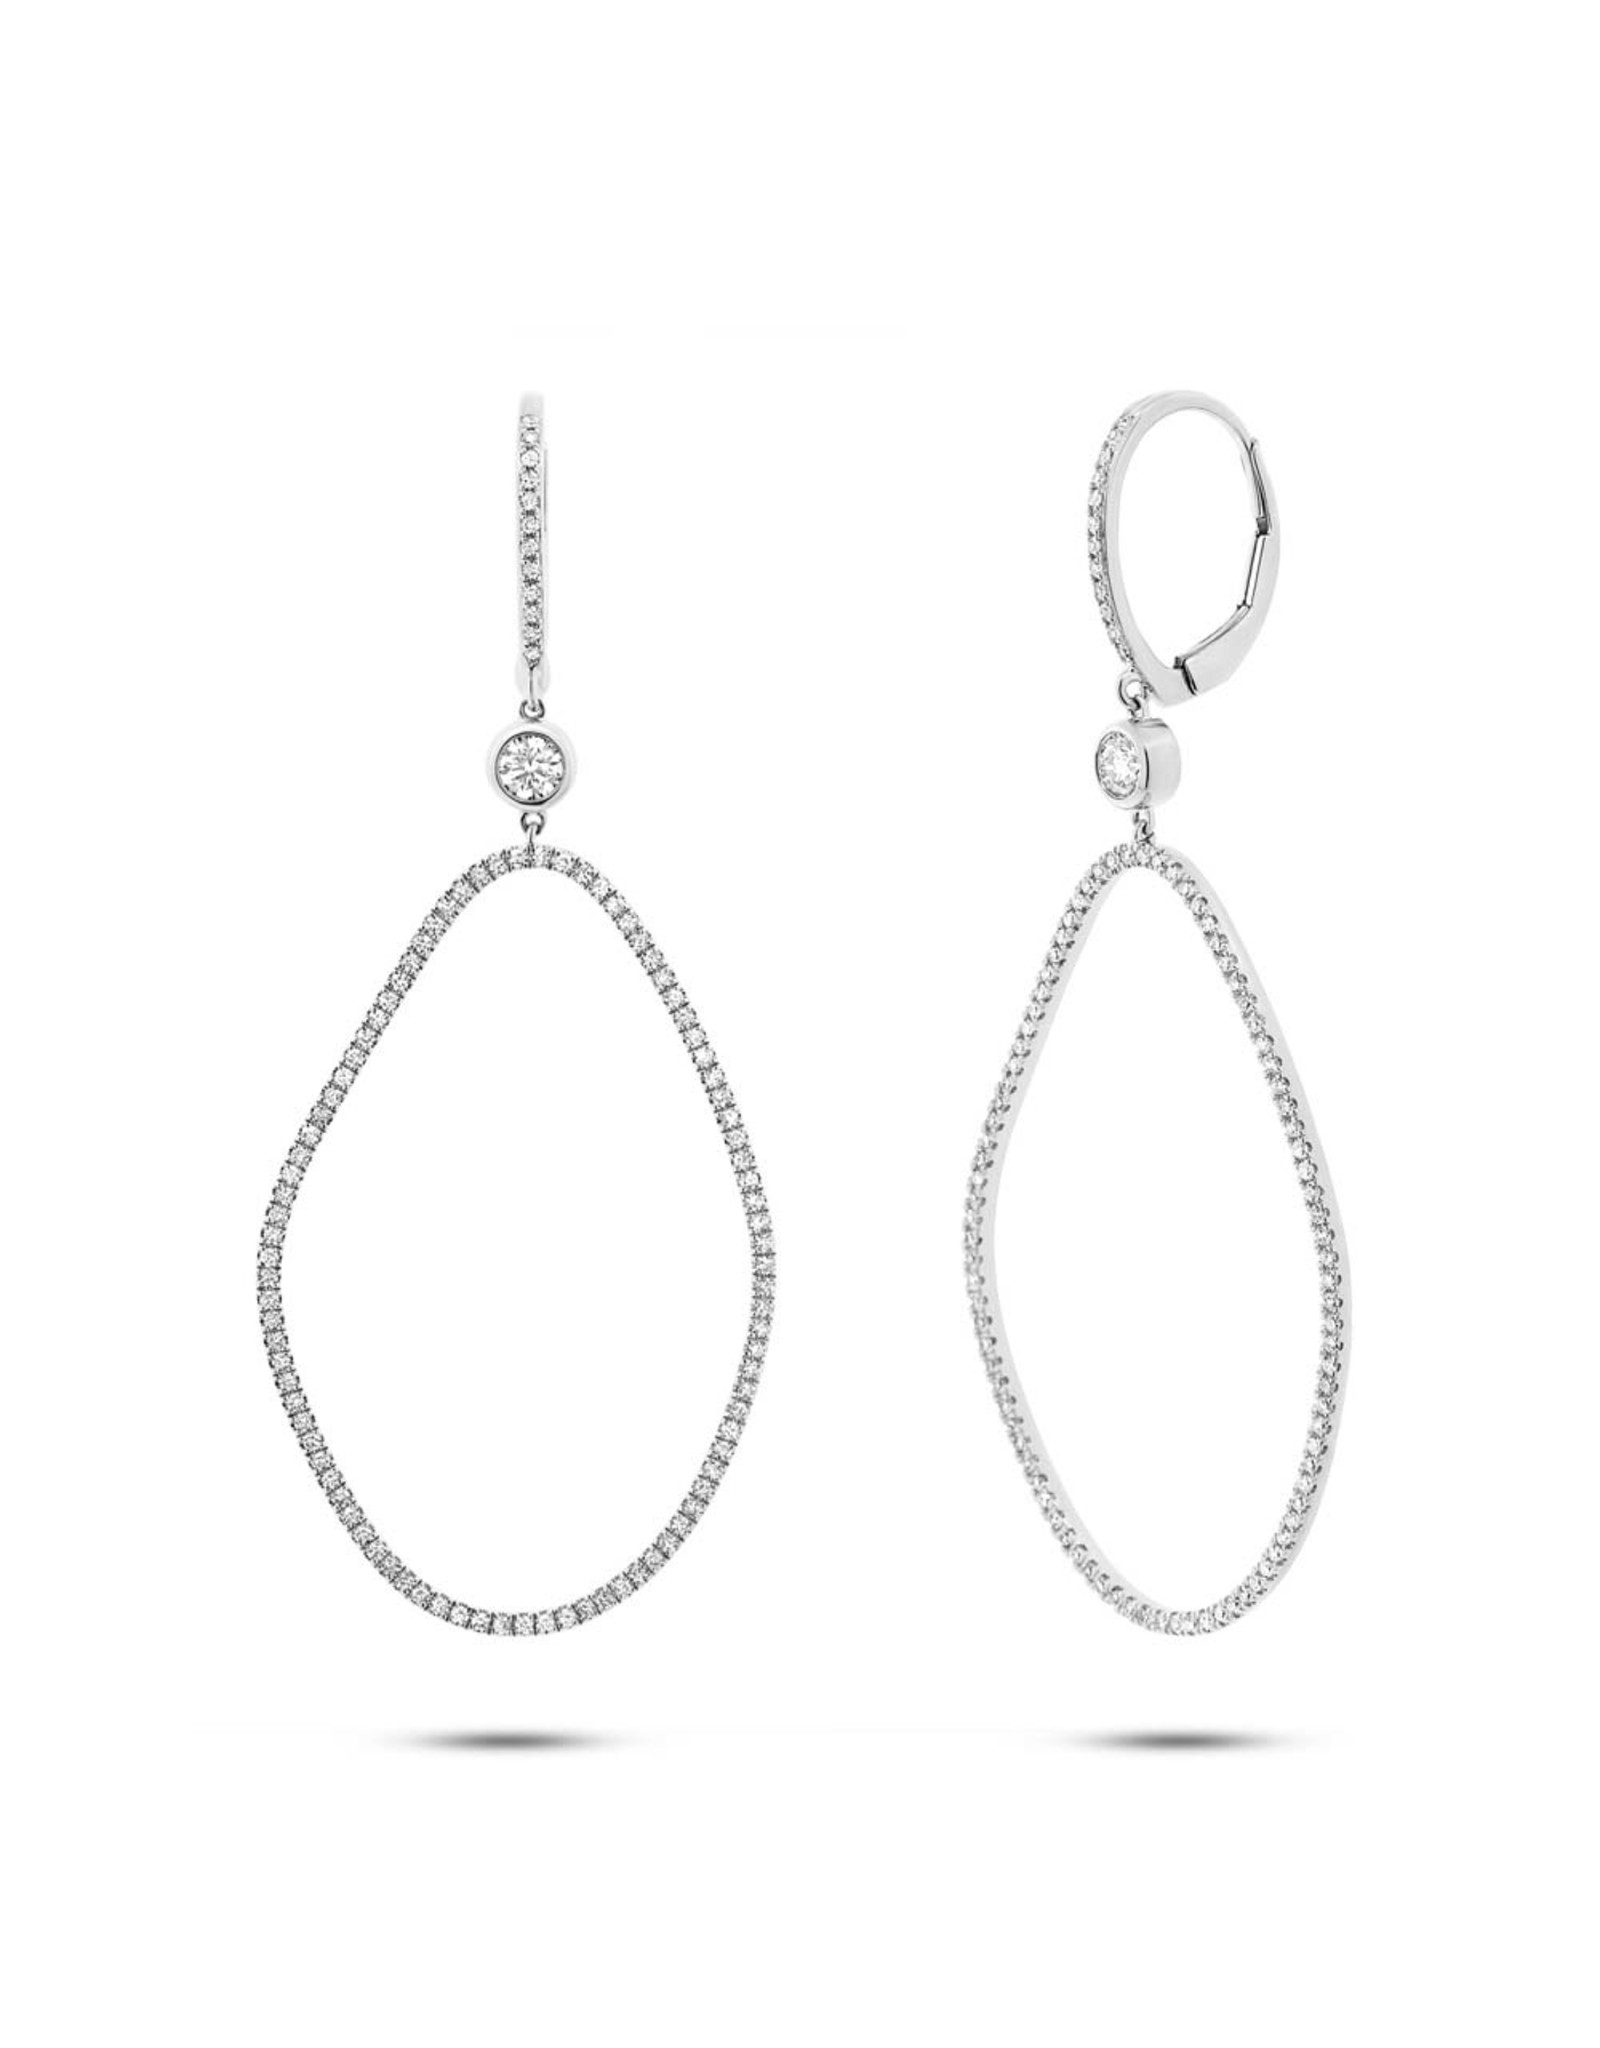 14K White Gold Diamond Fashion Dangle Earrings, D: 0.82ct